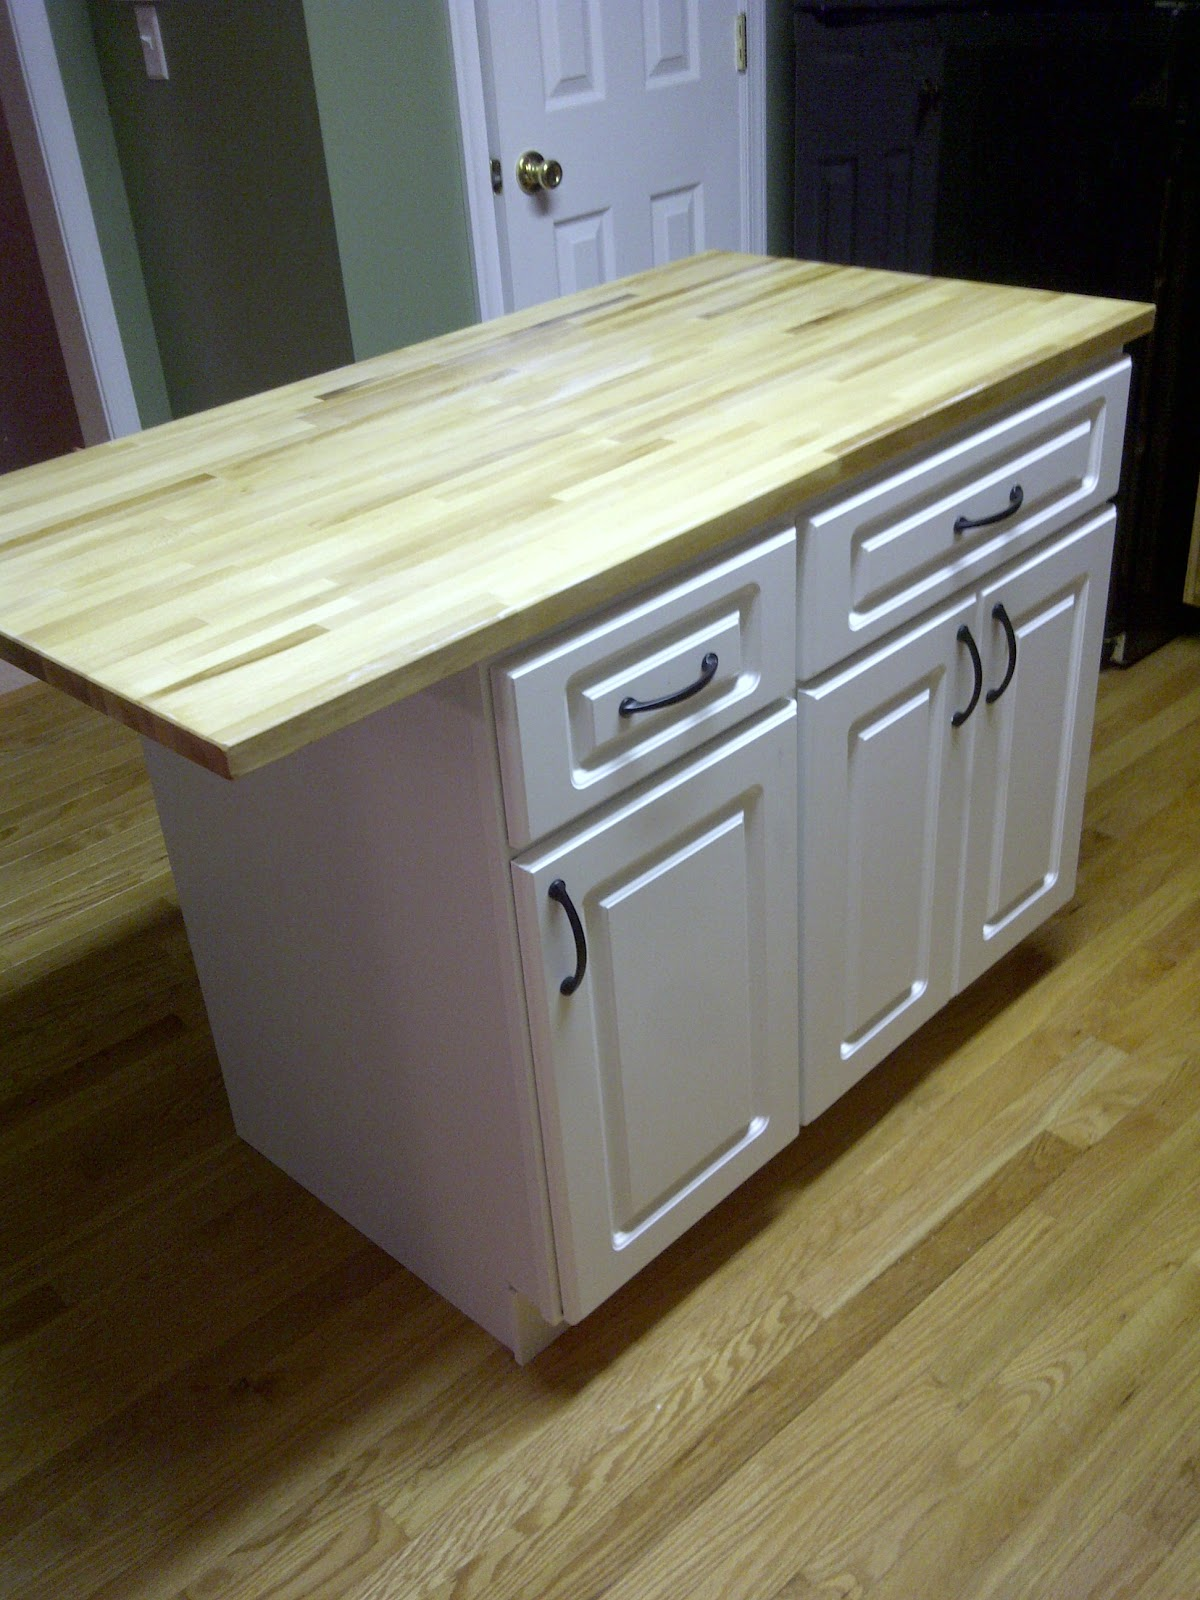 Misadventures in DIY Kitchen Island Part 2 and Reveal